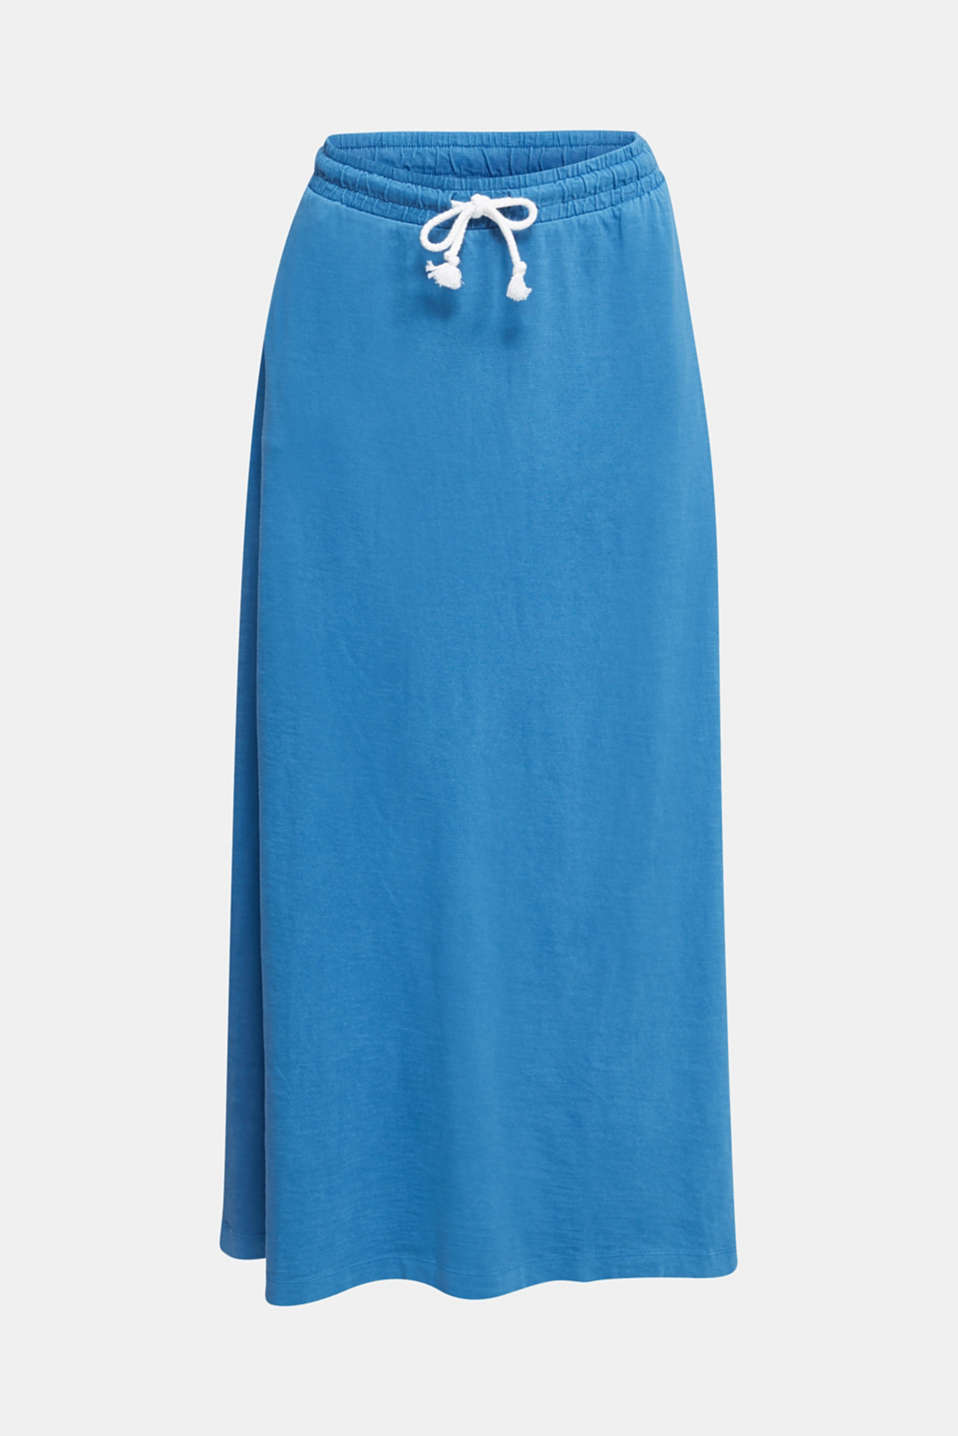 Jersey skirt made of 100% organic cotton, BRIGHT BLUE 2, detail image number 6